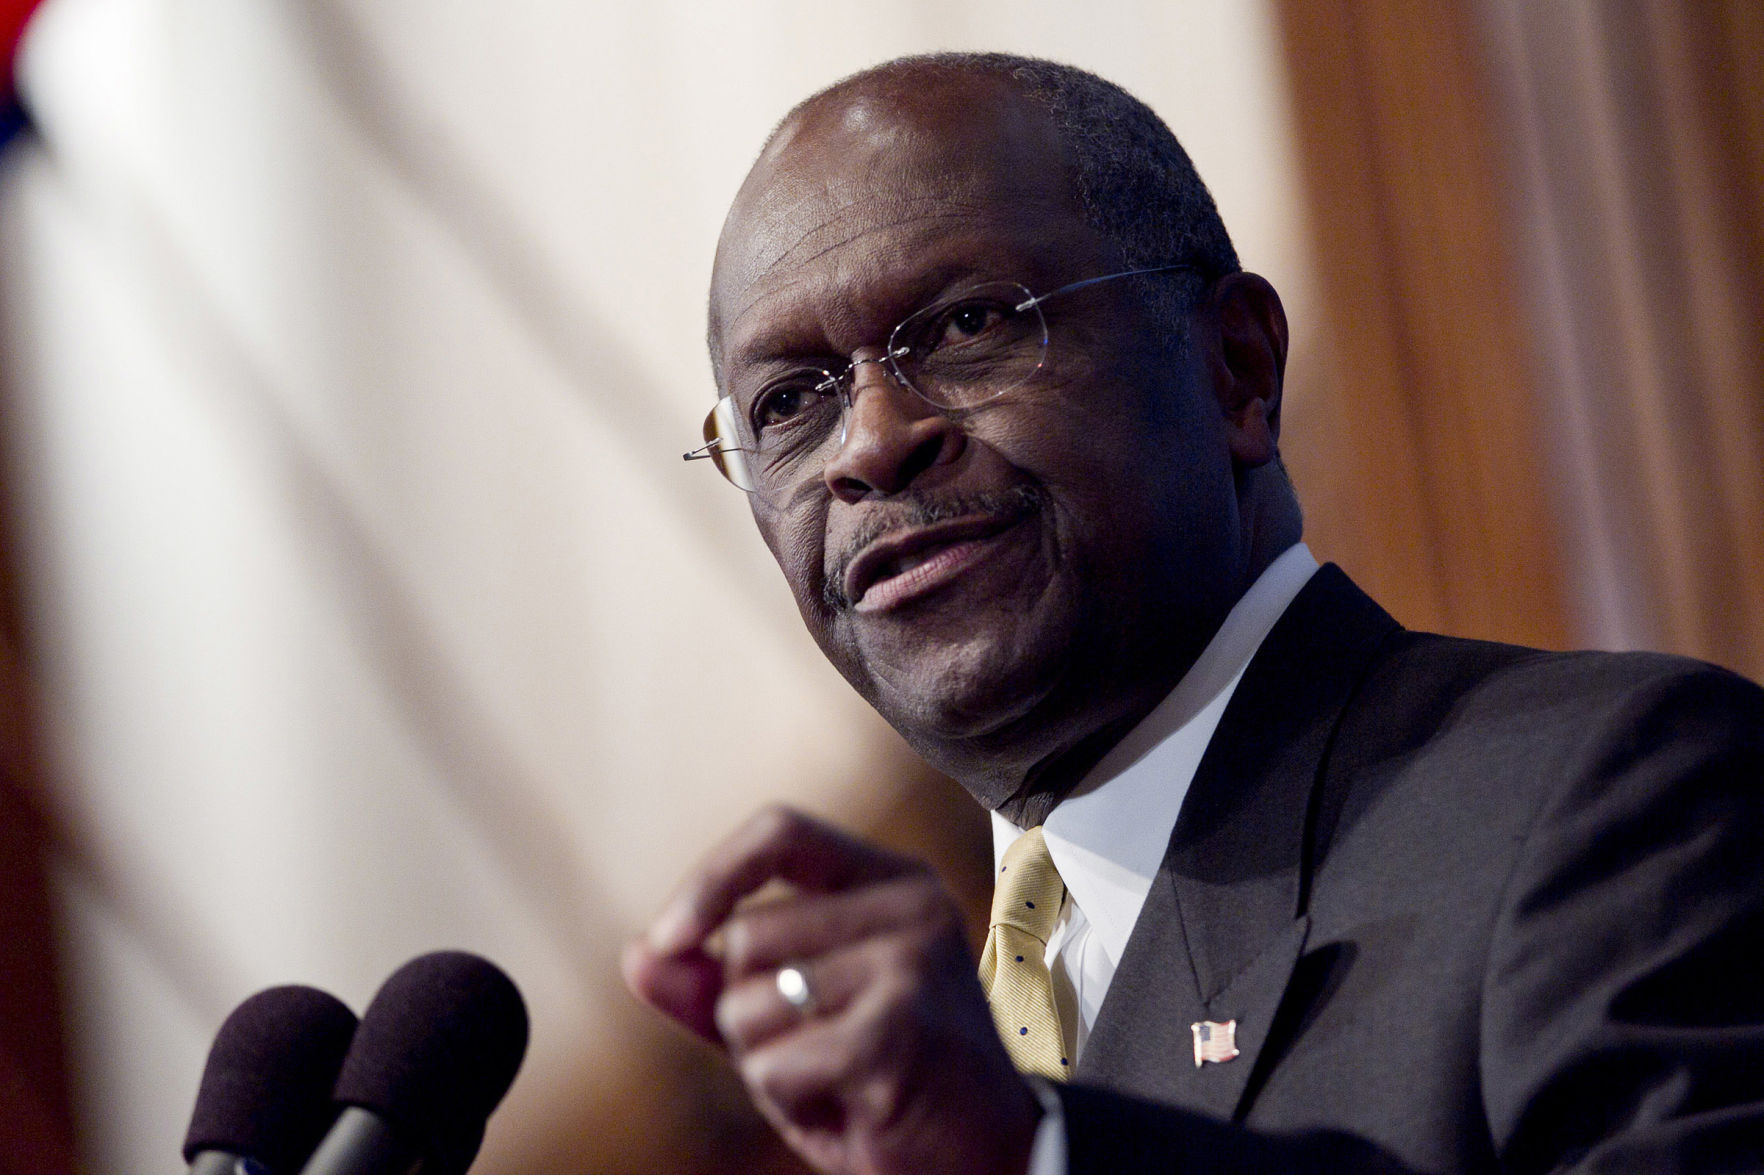 Trump Considering Herman Cain For Federal Reserve Board